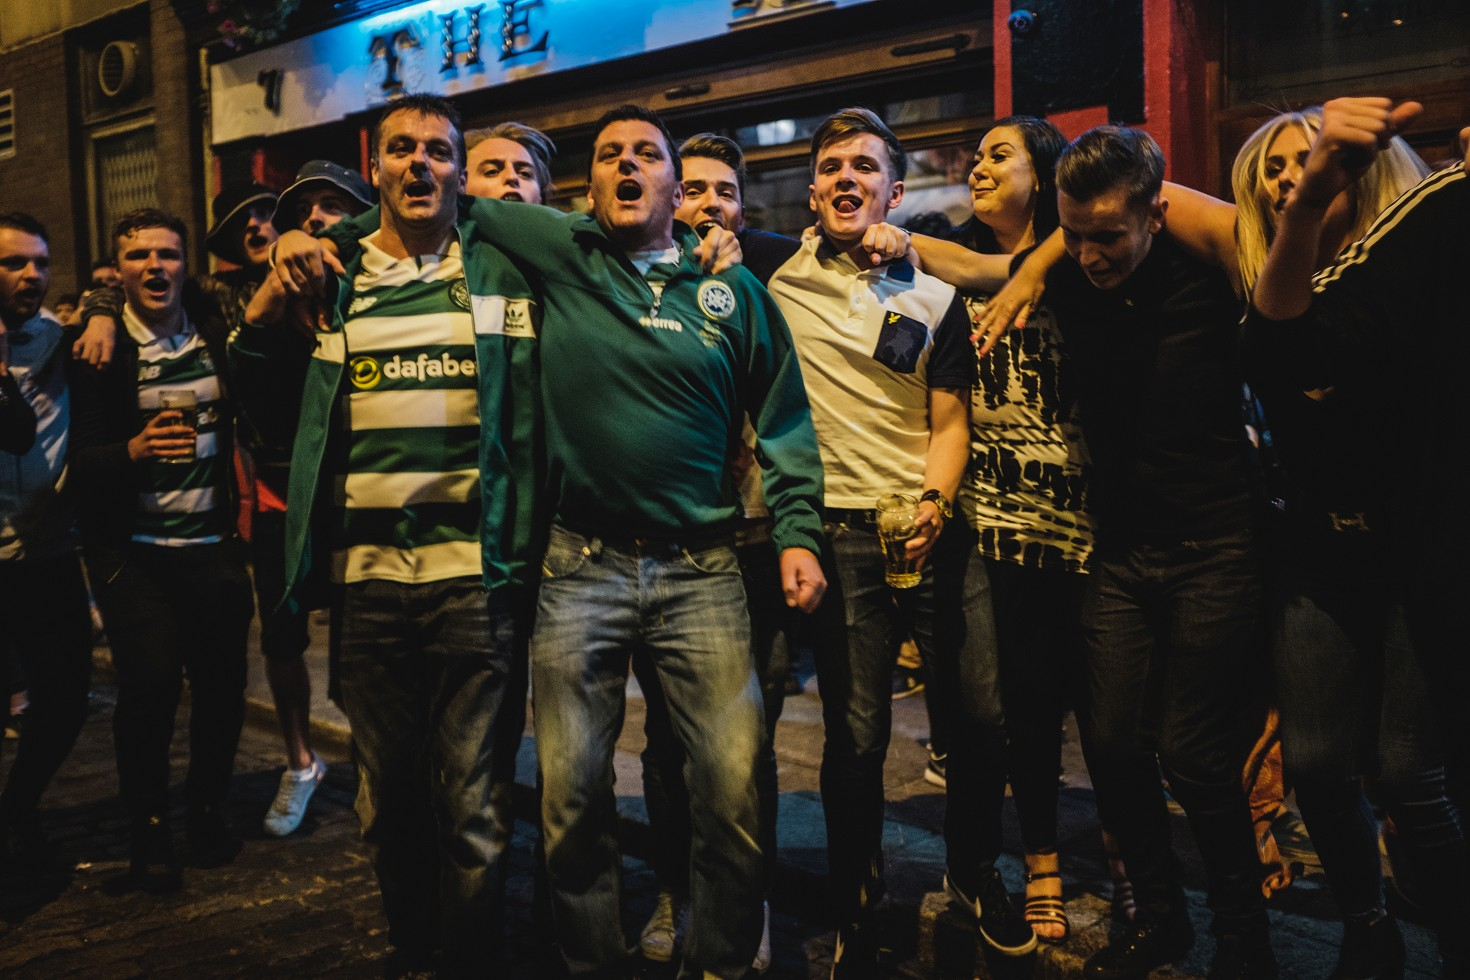 Celtic-Barca-Barcelona-Dublin-Temple-Bar-Aviva-Ireland-Fans (7 von 68)